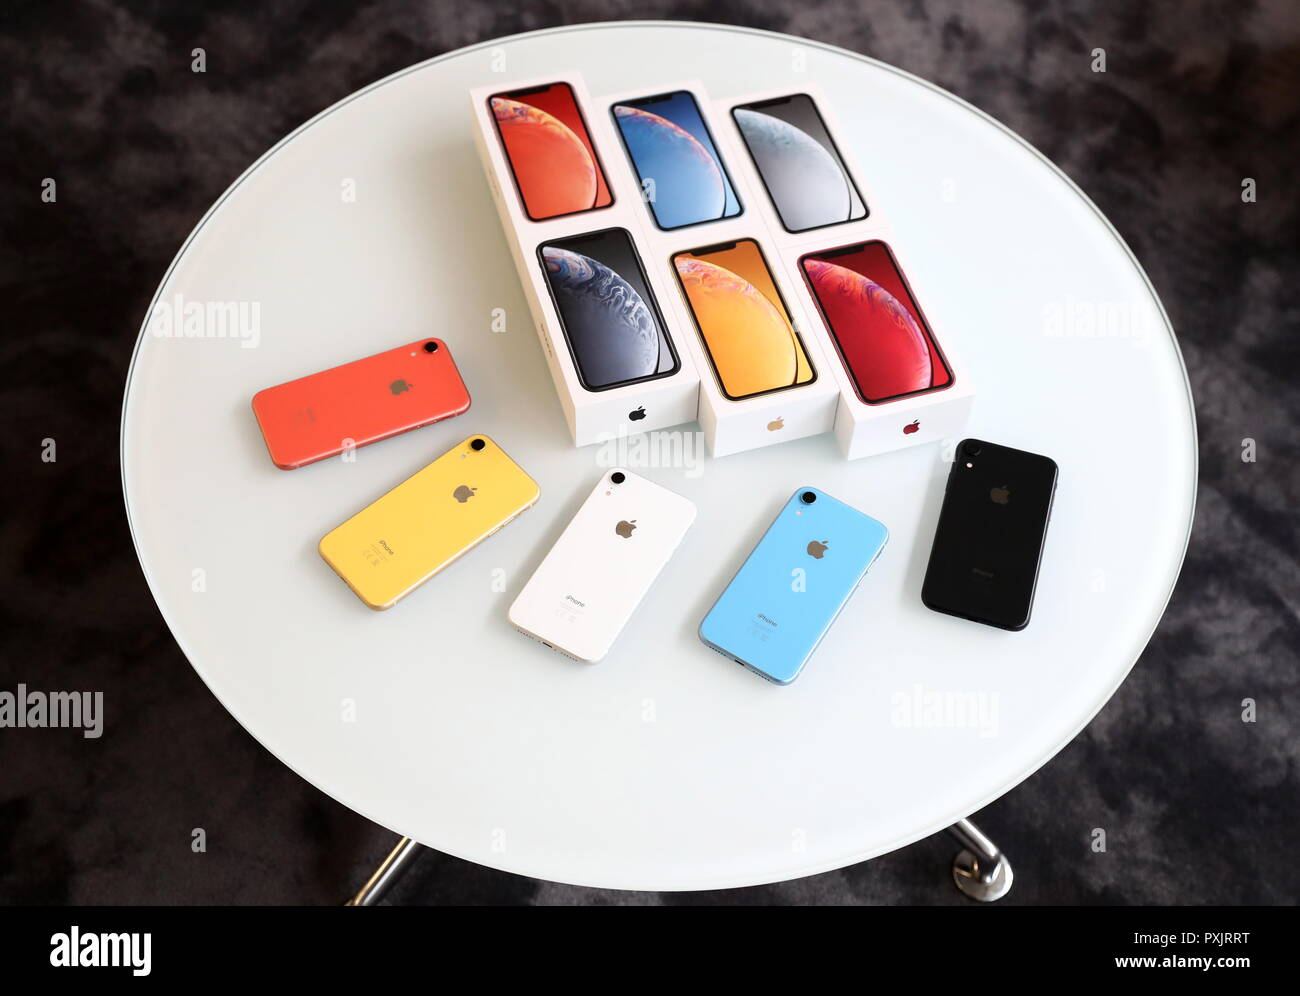 Moscow, Russia. 23rd Oct, 2018. MOSCOW, RUSSIA - OCTOBER 23, 2018: Revealing Apple's new iPhone XR before the start of official sales in Russia scheduled for October 26, 2018. Anton Novoderezhkin/TASS Credit: ITAR-TASS News Agency/Alamy Live News Stock Photo